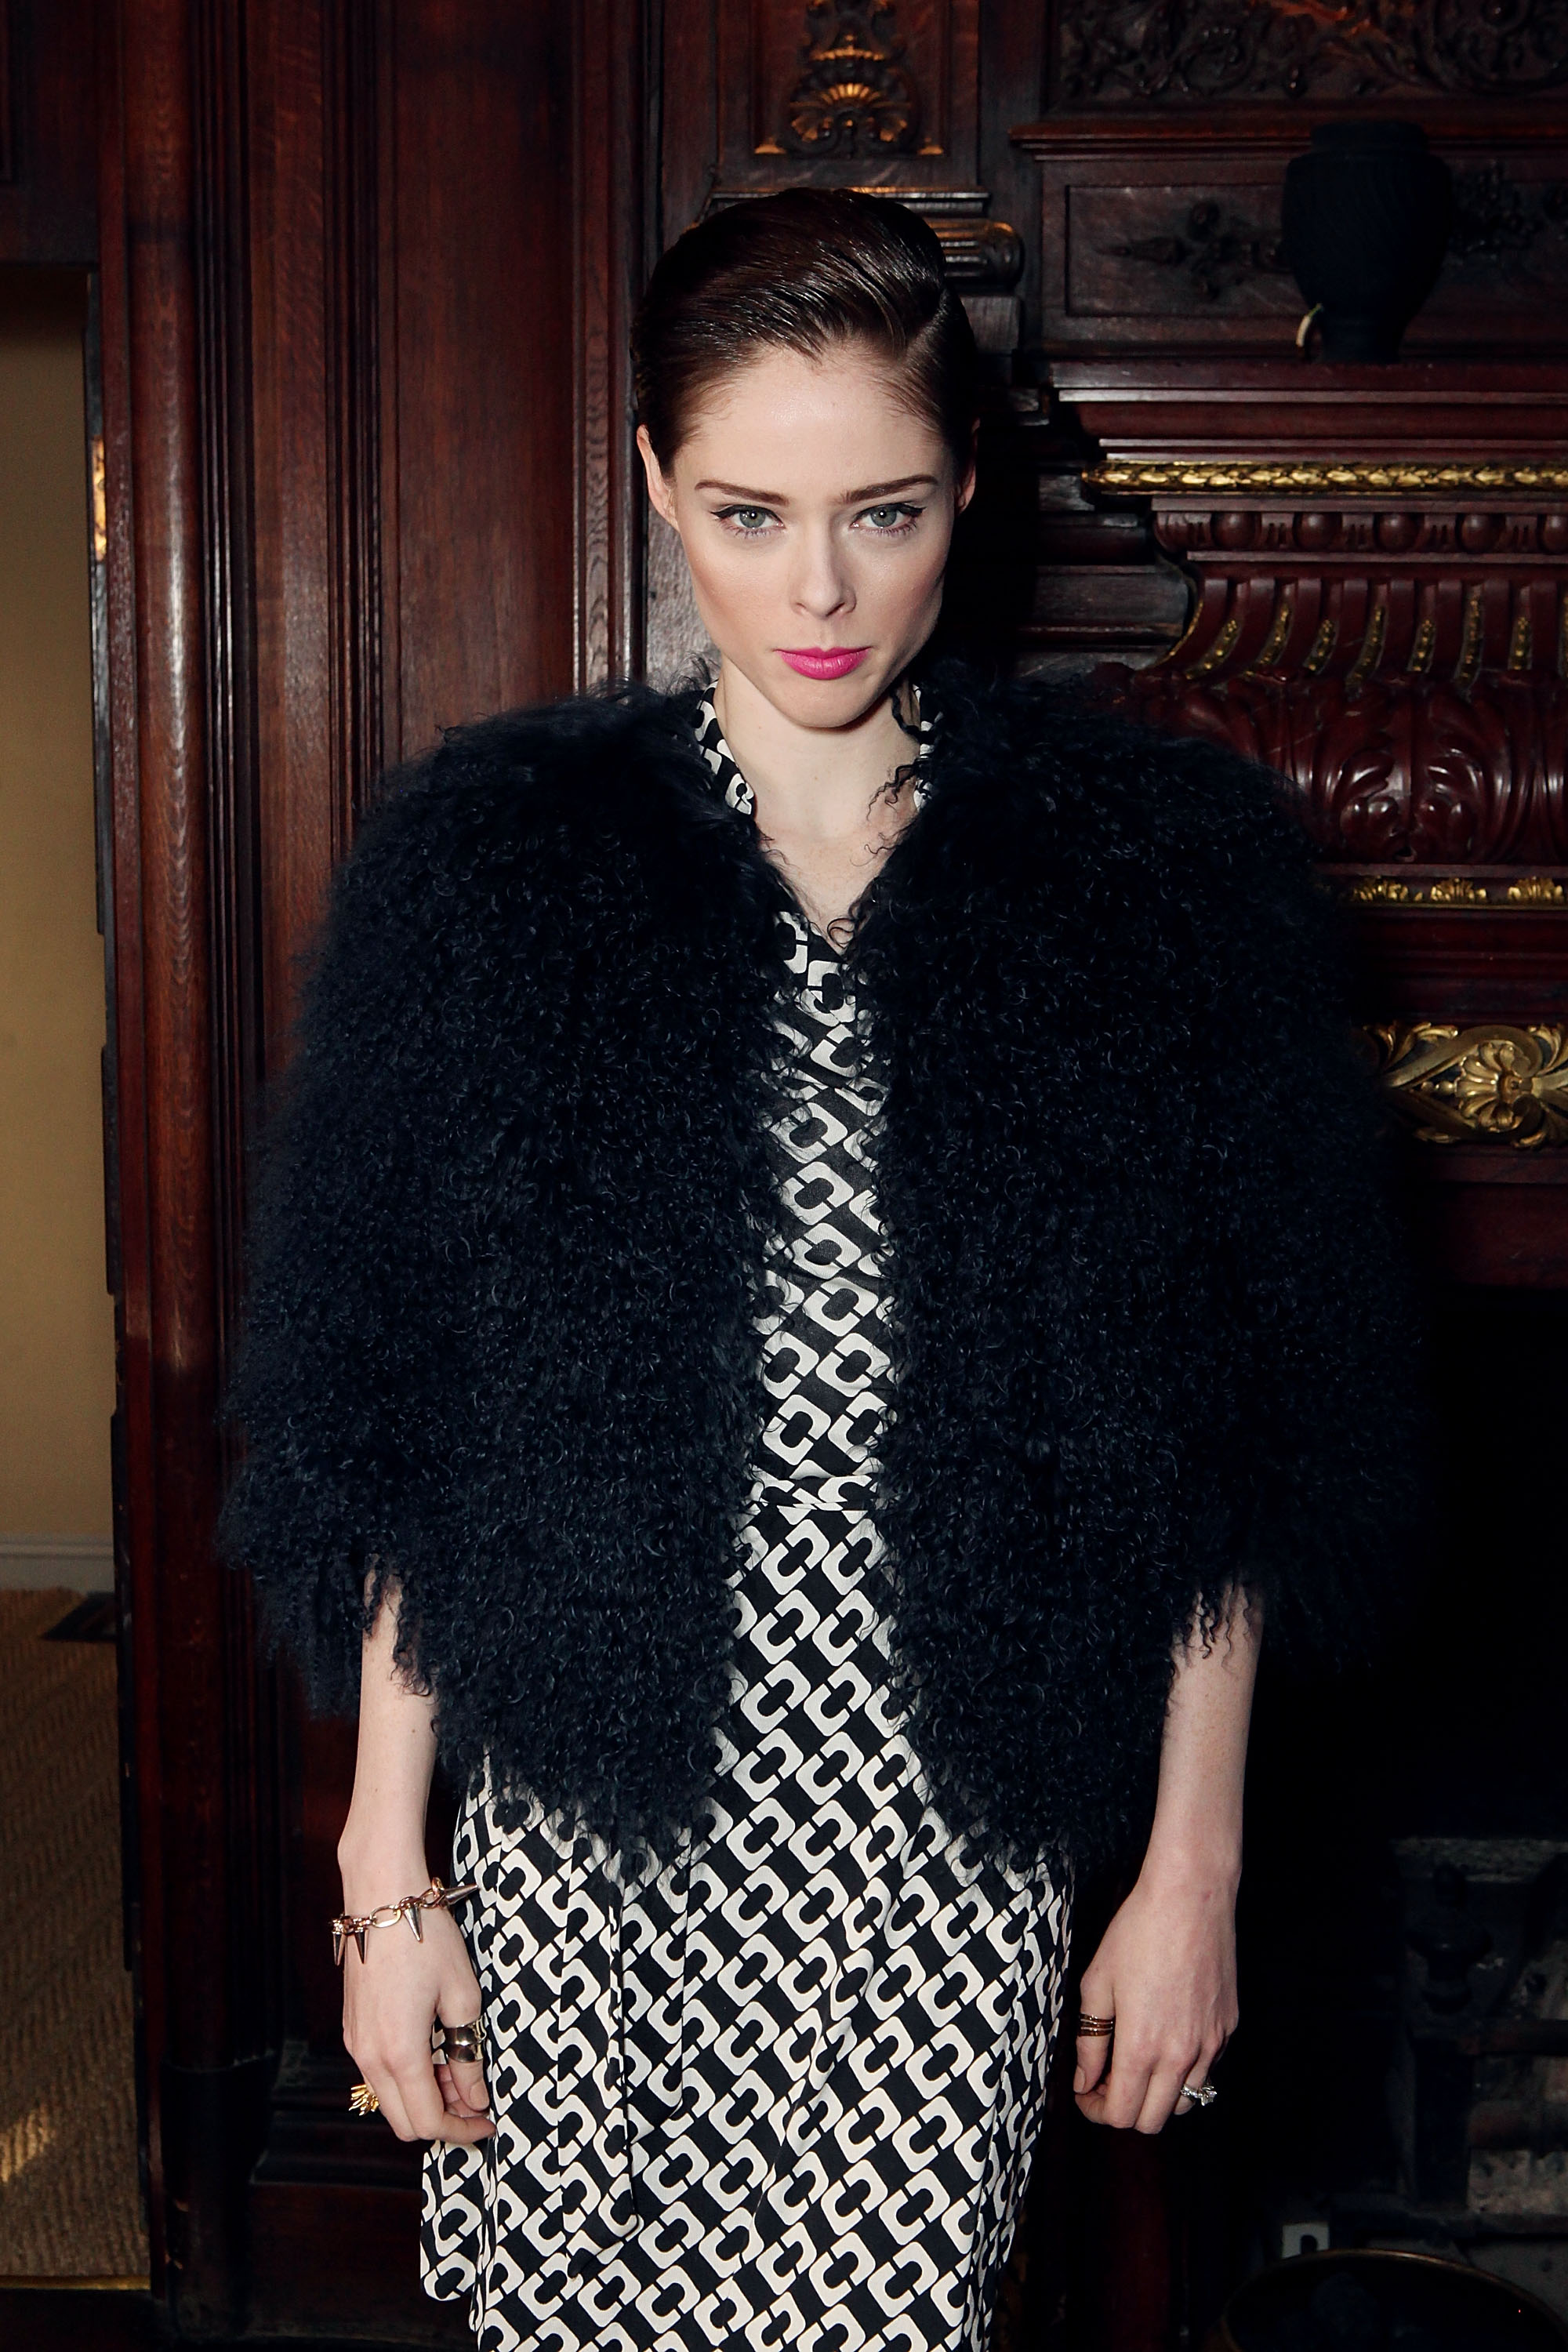 Coco Rocha<br /> Photo by David M. Benett/Getty Images for Pringle of Scotland